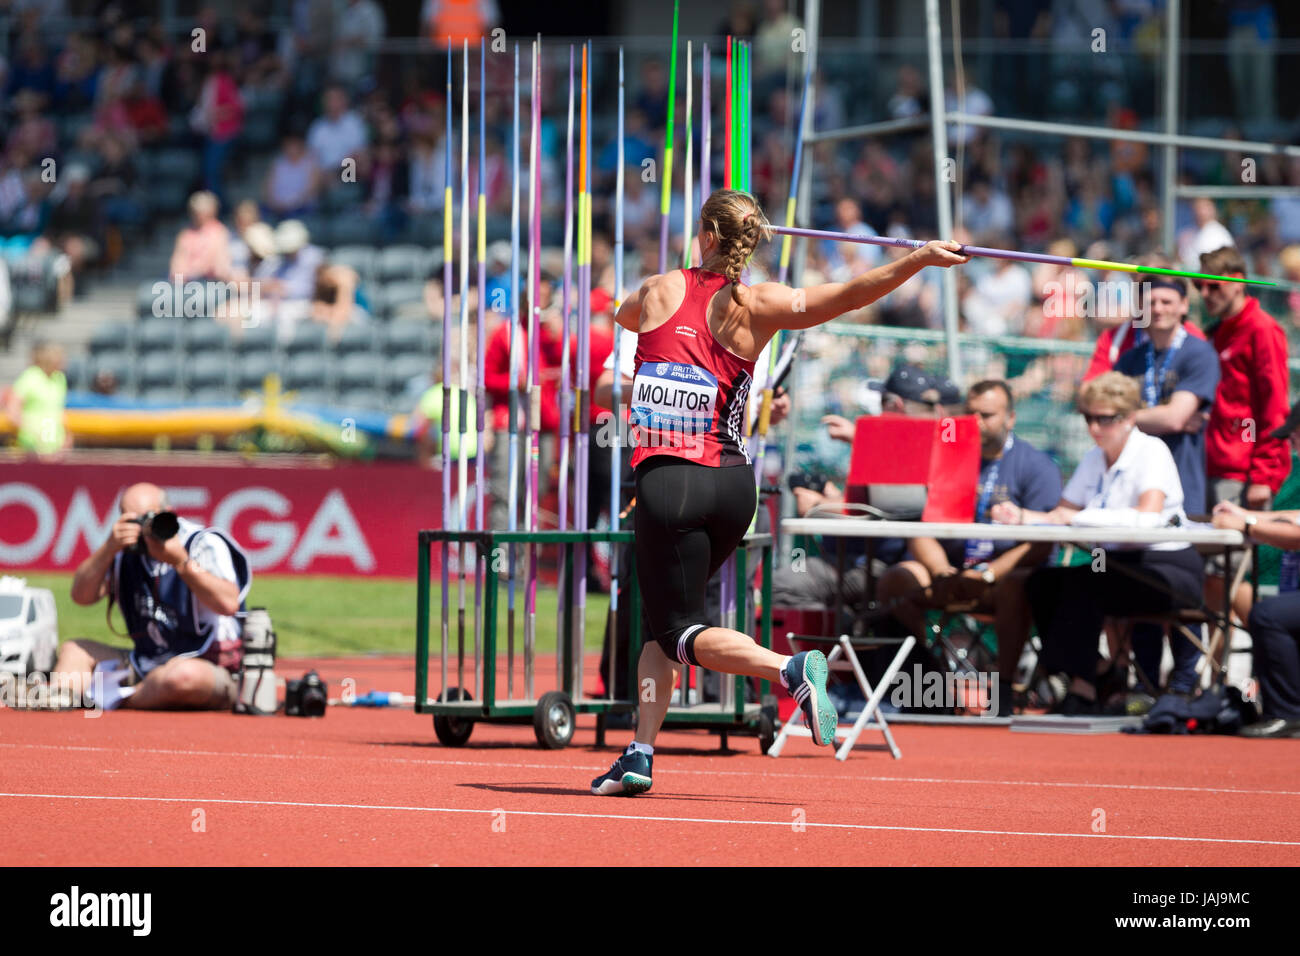 Katharina MOLITOR competing in the Javelin at the 2016 Diamond League, Alexander Stadium, Birmingham, UK, 6th June - Stock Image